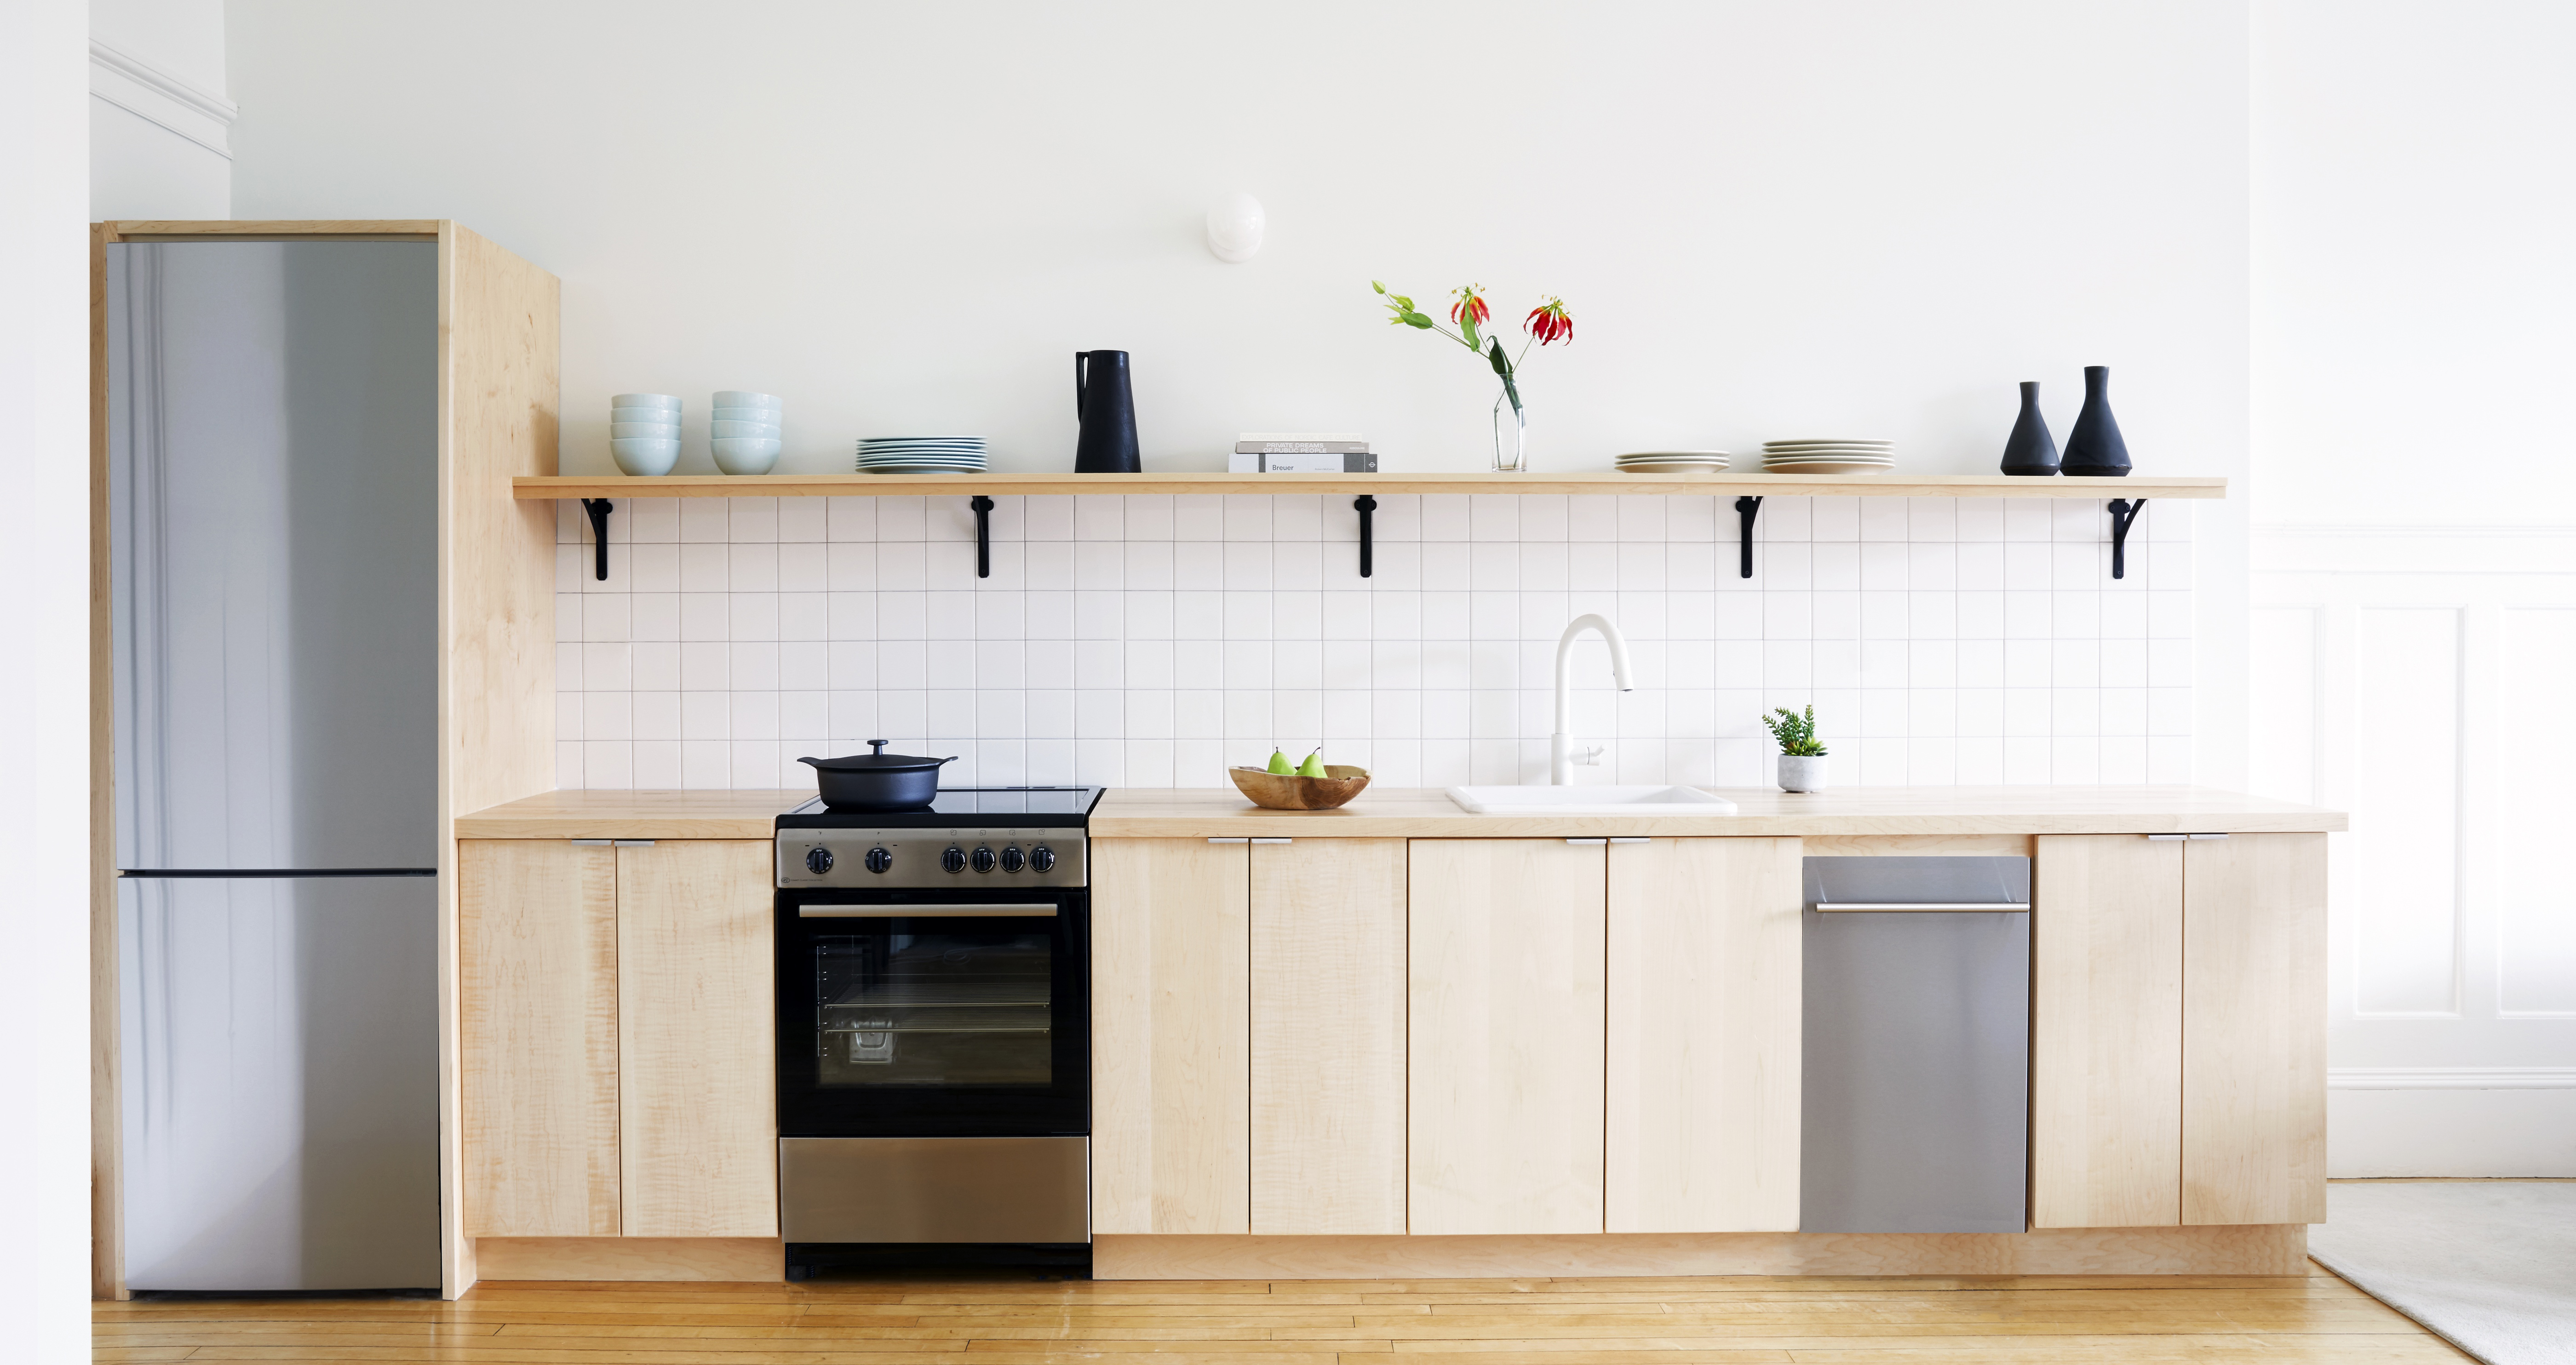 Kite-1612-Weybosset Theater District Mixed Use-Kitchen 2